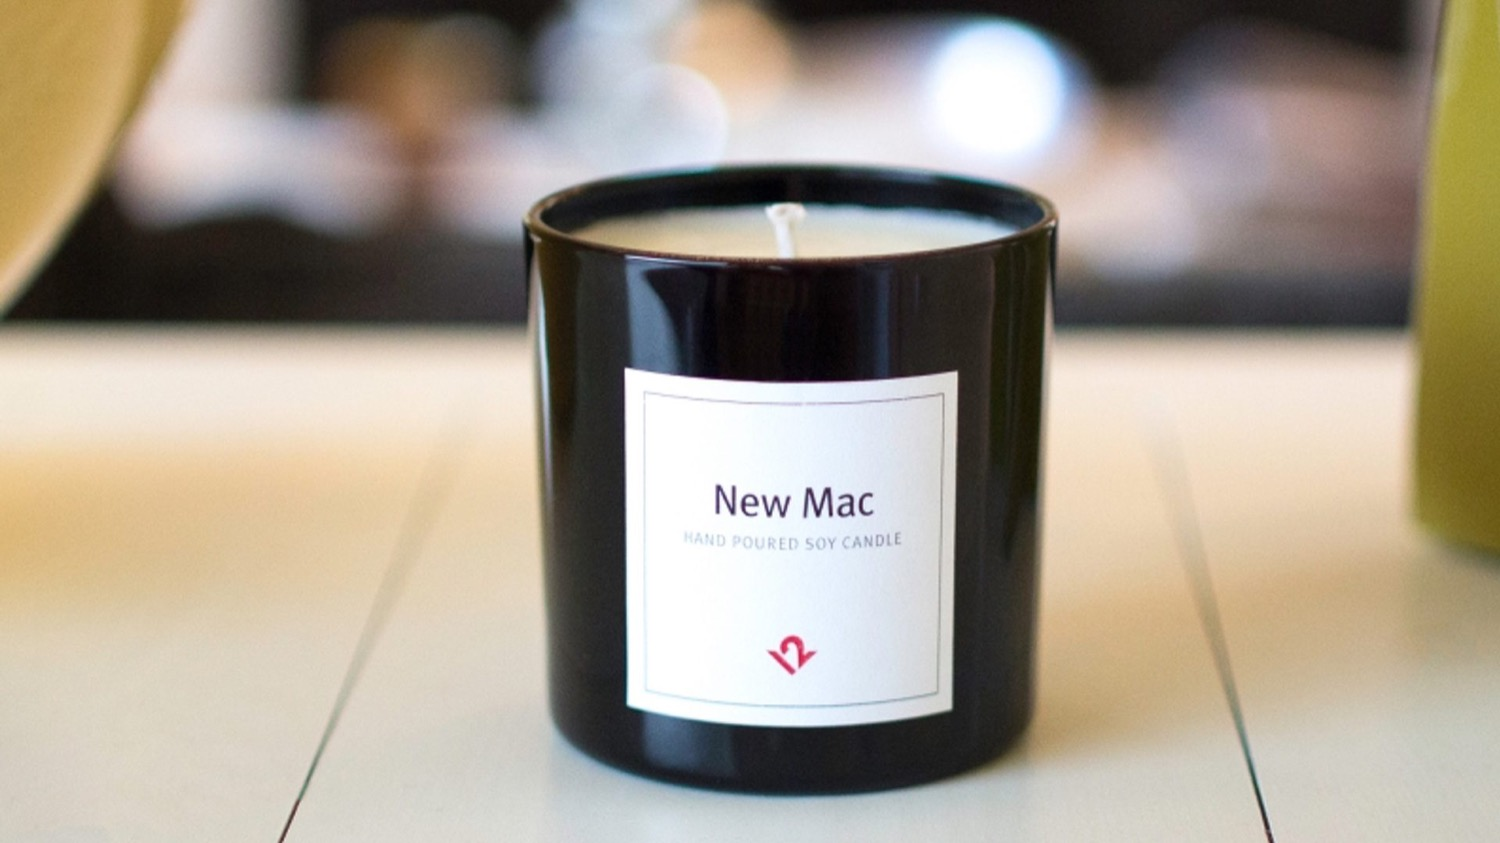 On sale candle for lovers of the smell of a new Mac